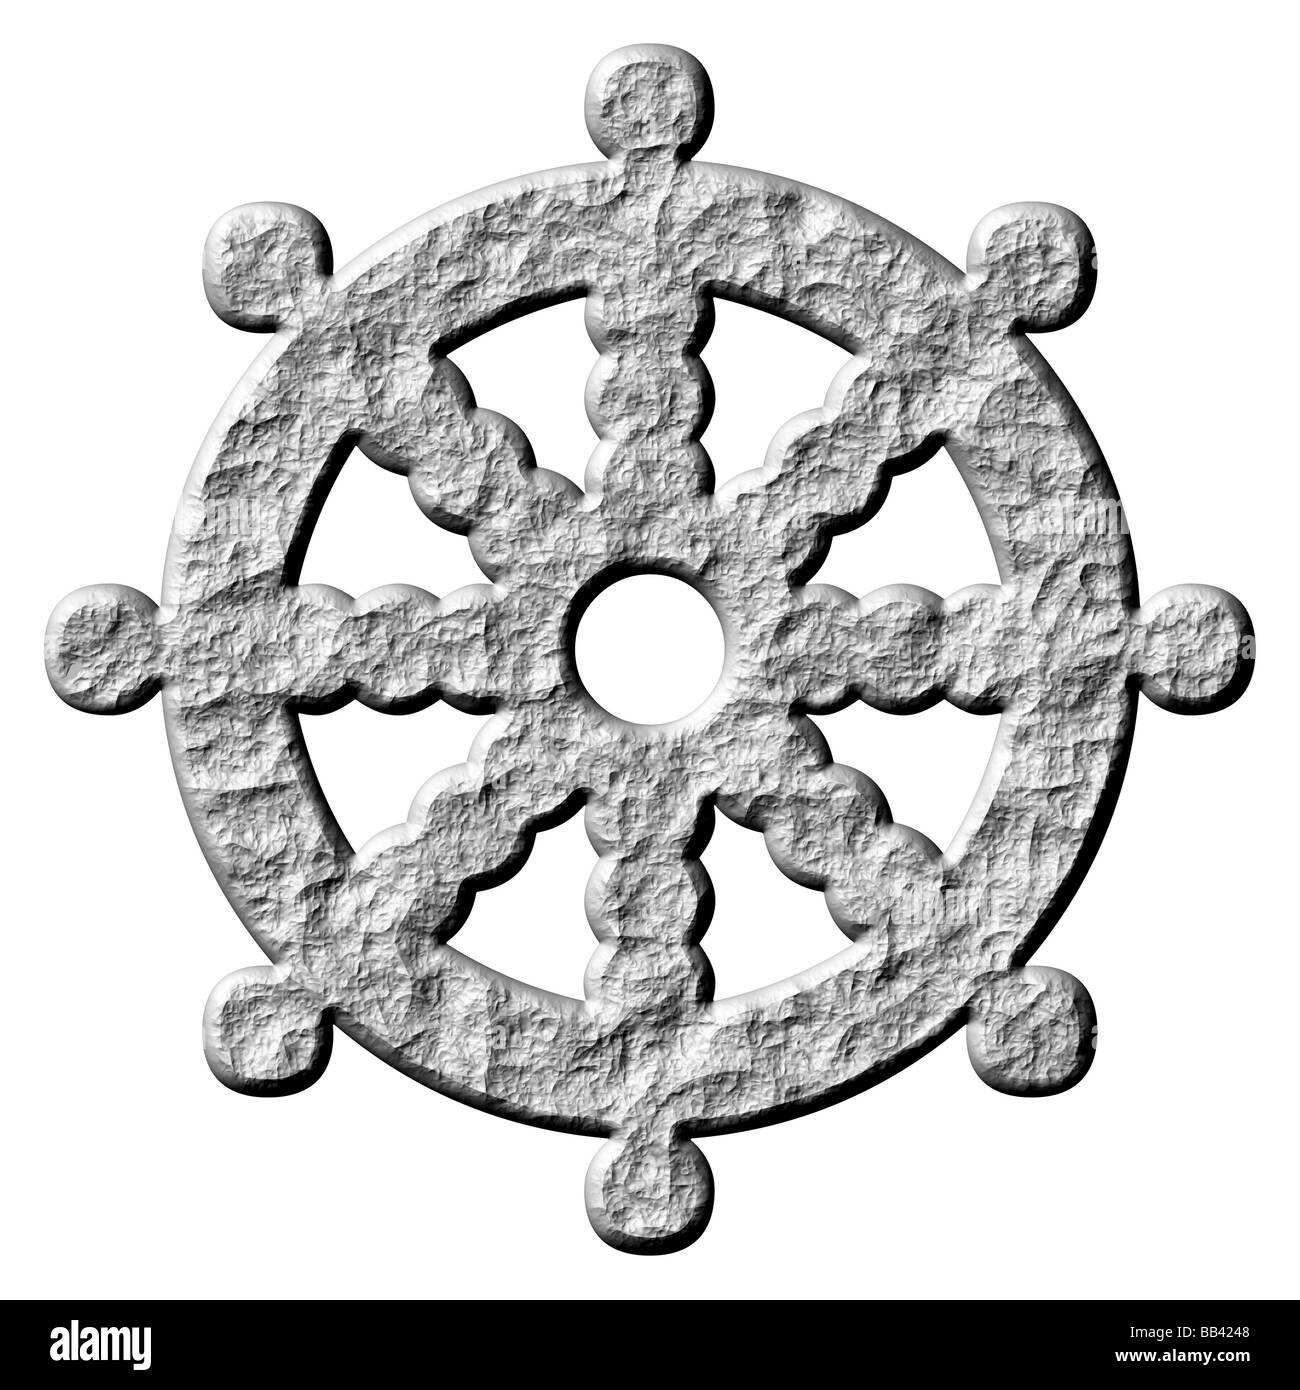 3d stone buddhism symbol wheel of dharma - Stock Image